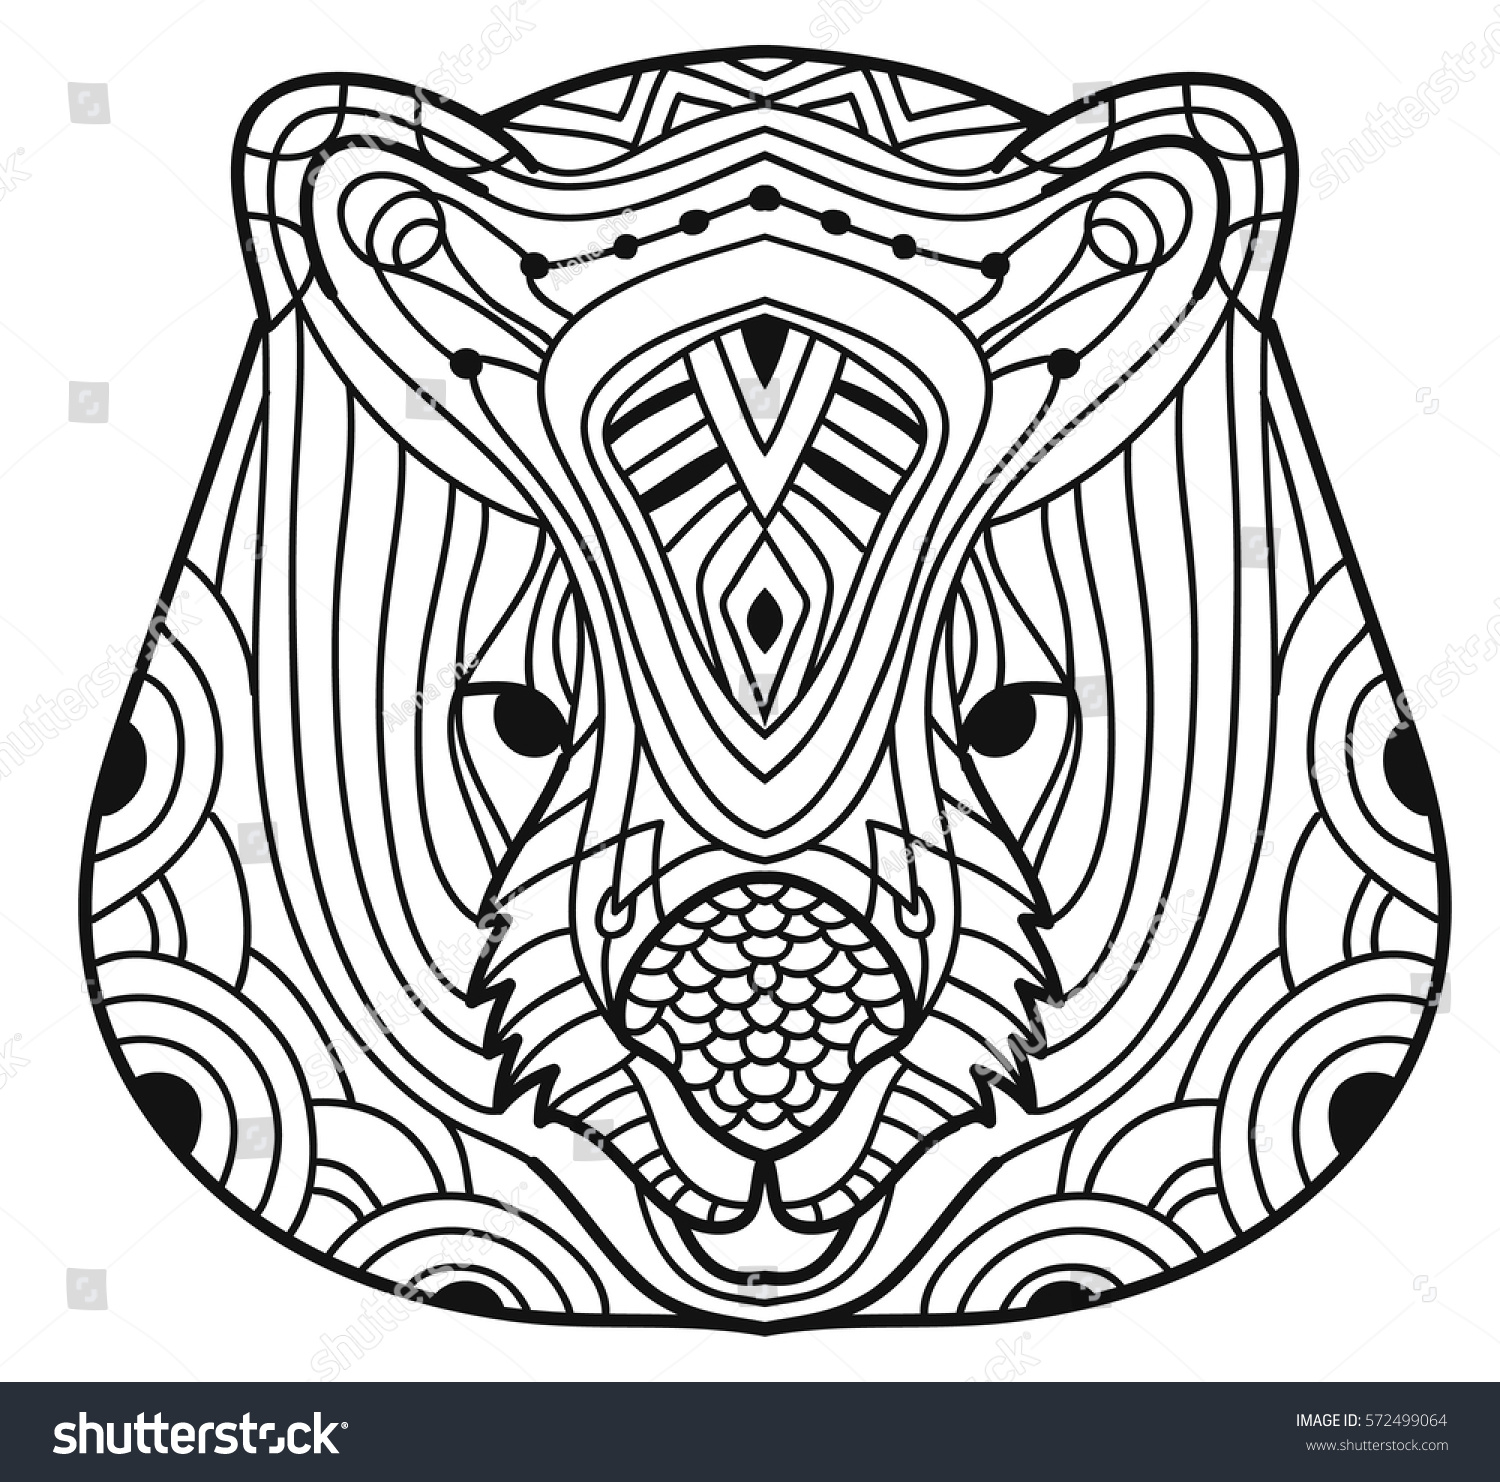 Animals Of Australia Wombat Cute Line Drawing A Head With